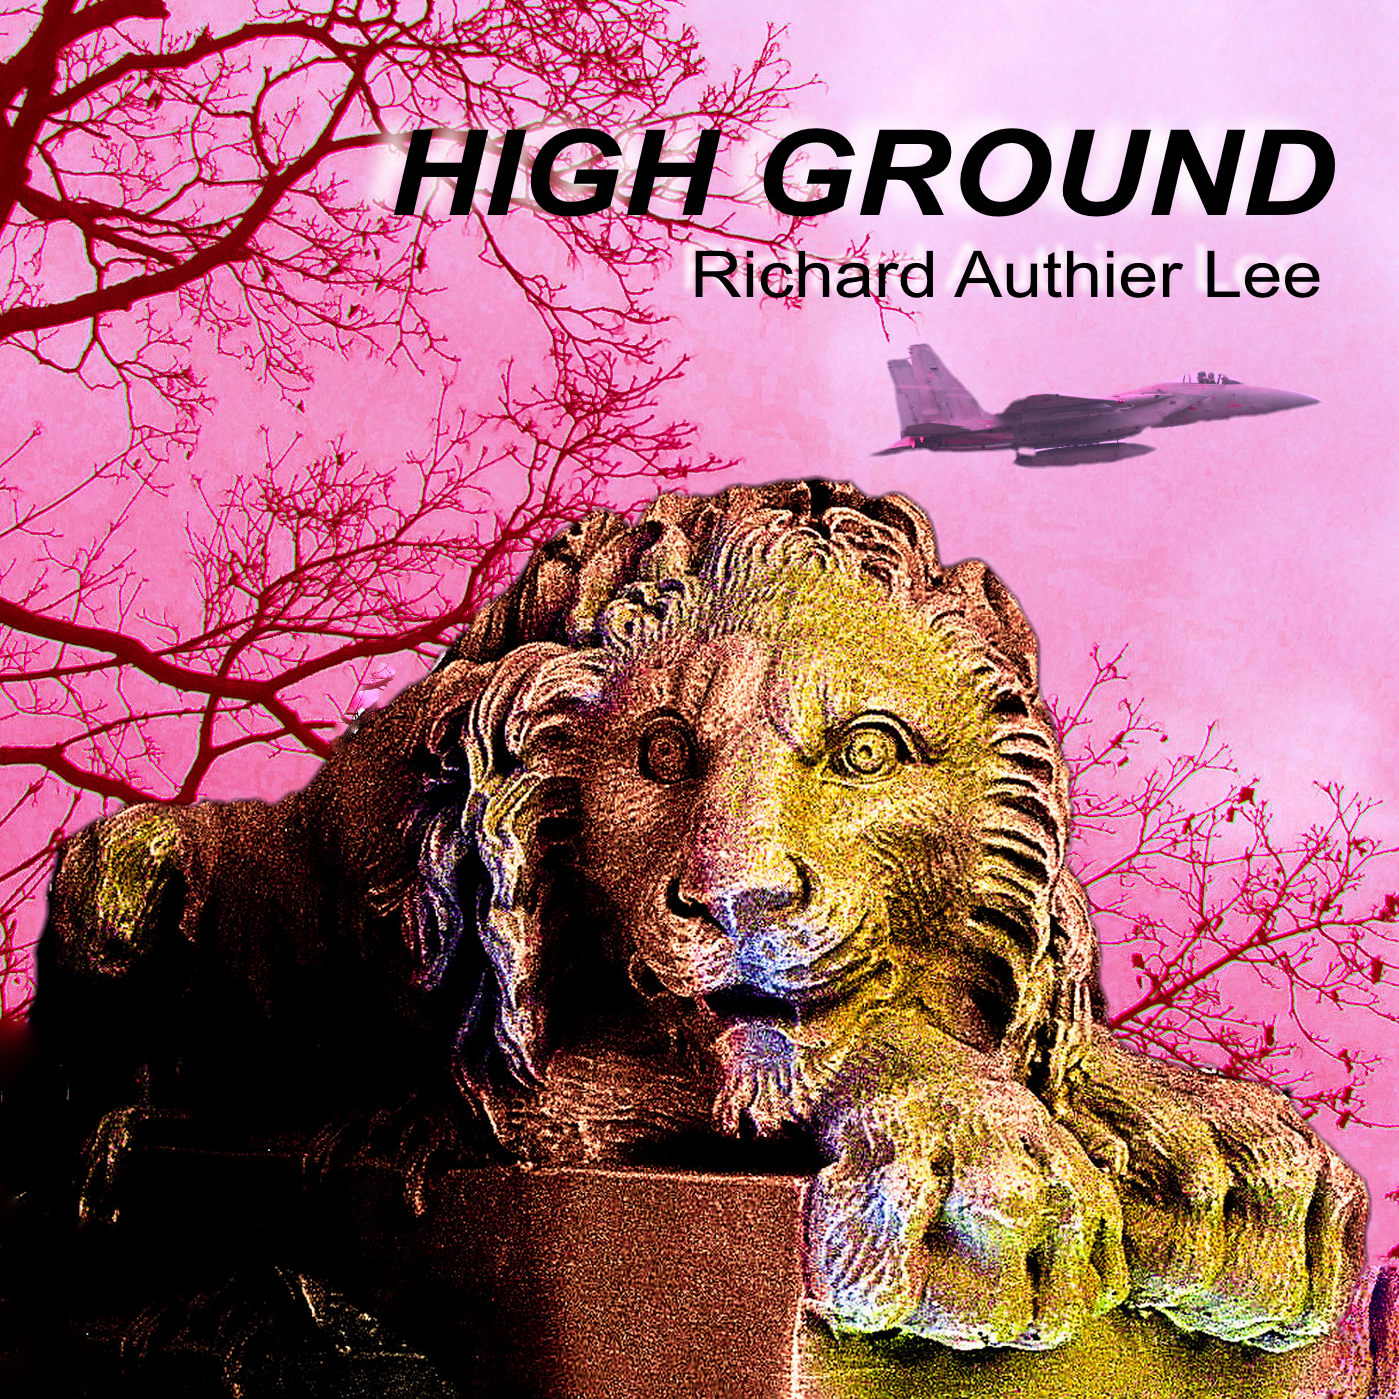 HIGH GROUND Released on Audible and iTunes